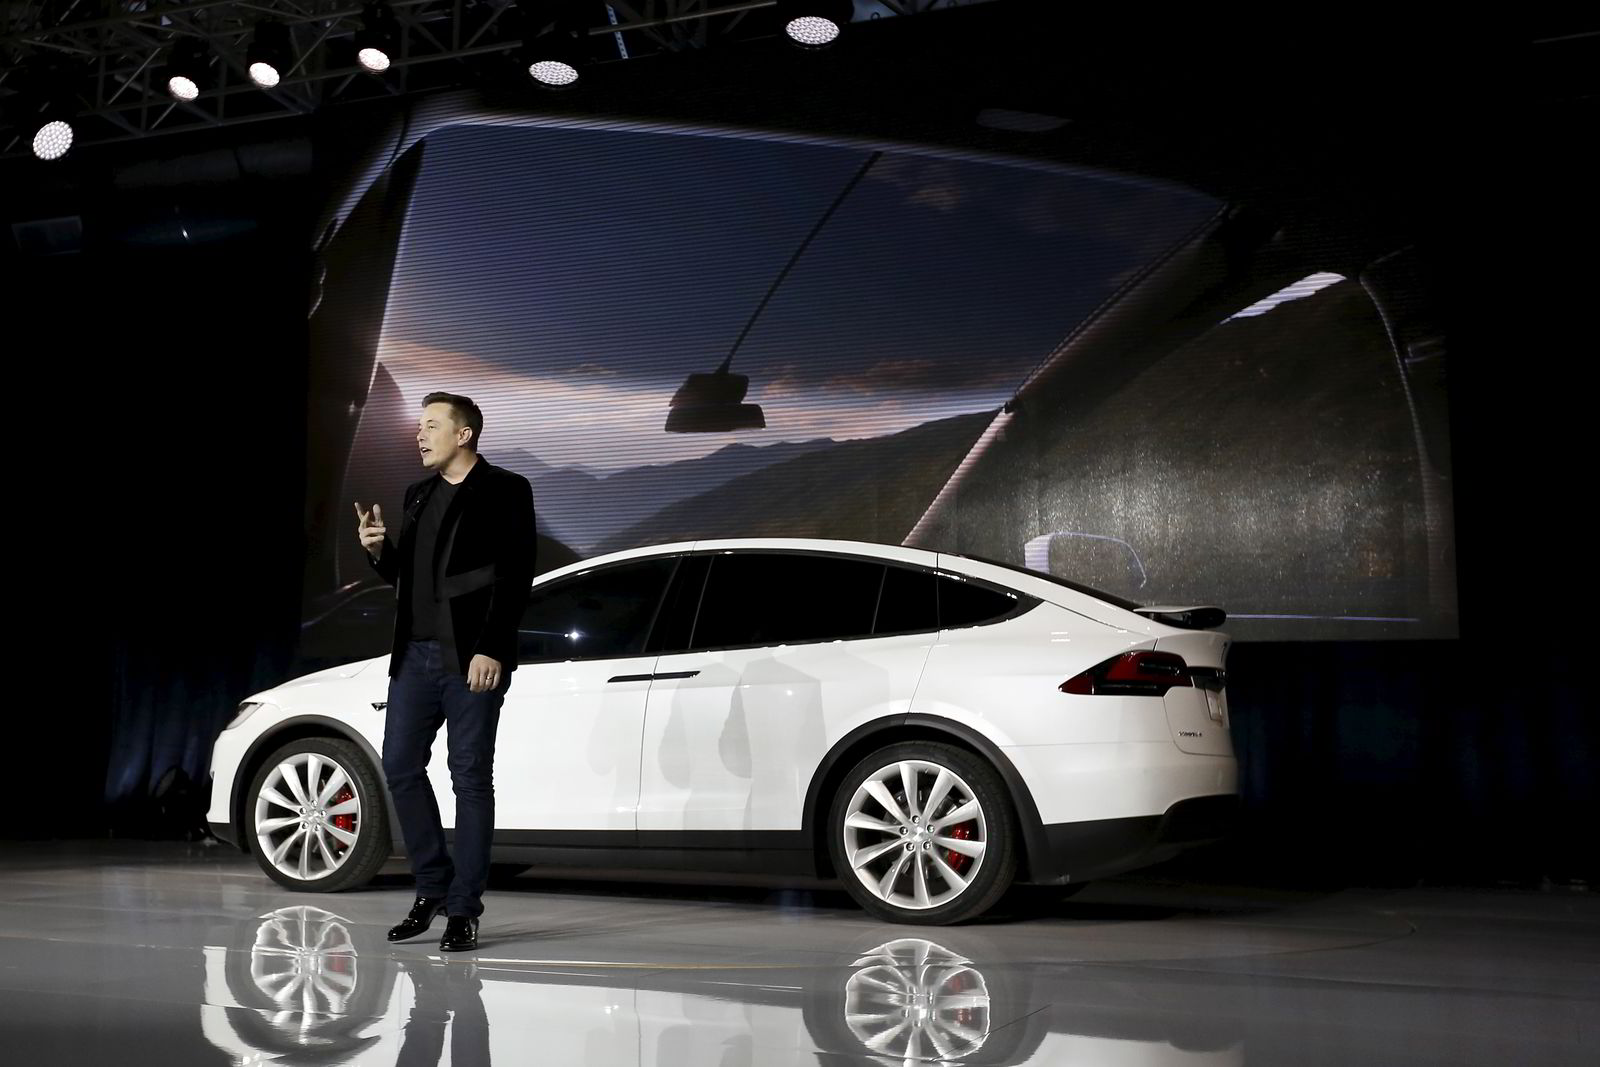 Tesla-gründer og eier Elon Musk under presentasjonen av Model X i California, USA ifjor høst. FOTO: